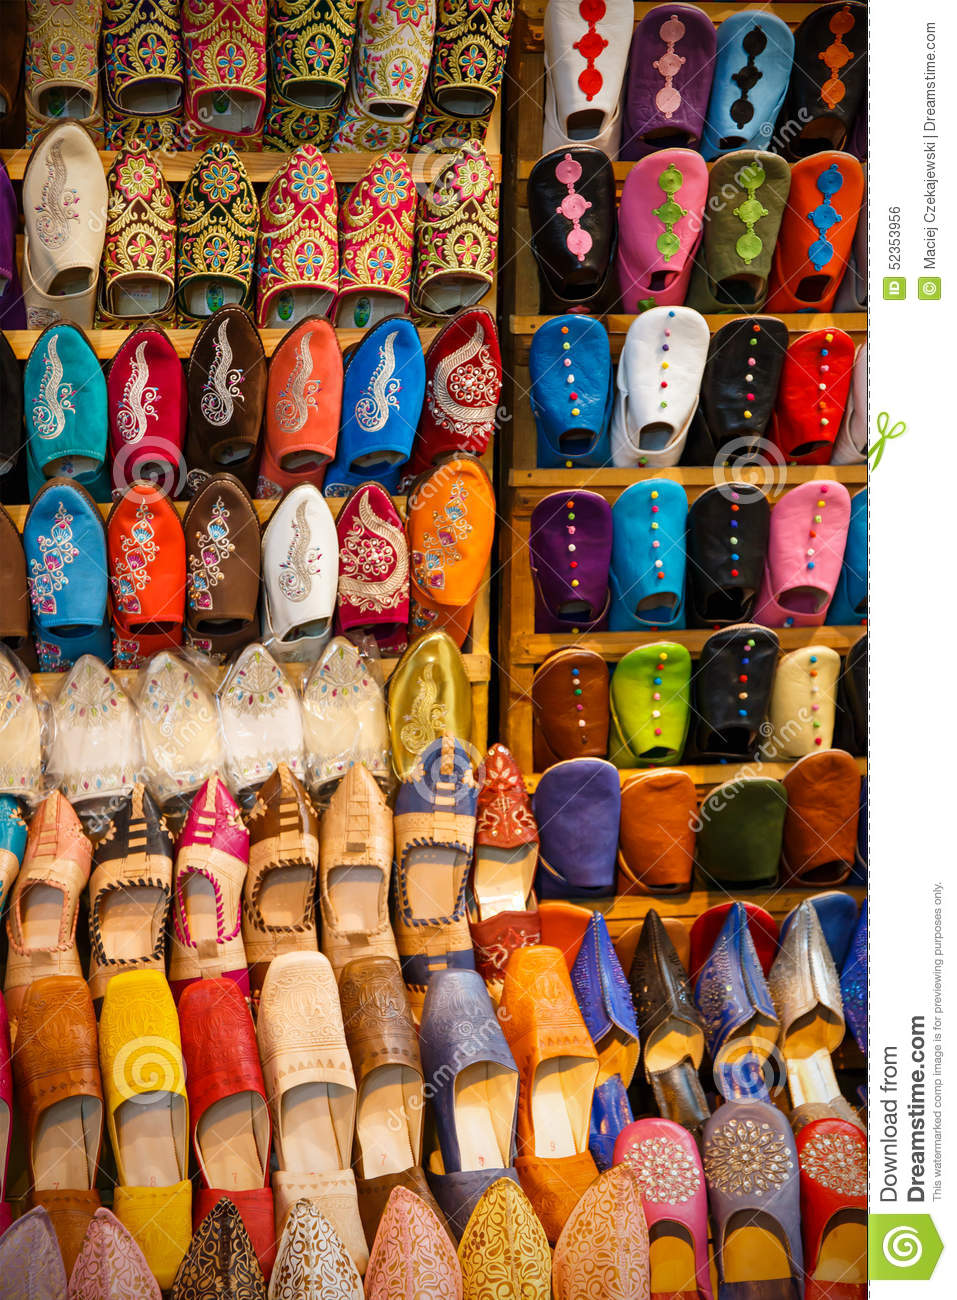 19ebaaca6599 Moroccan leather shoes stock photo. Image of many